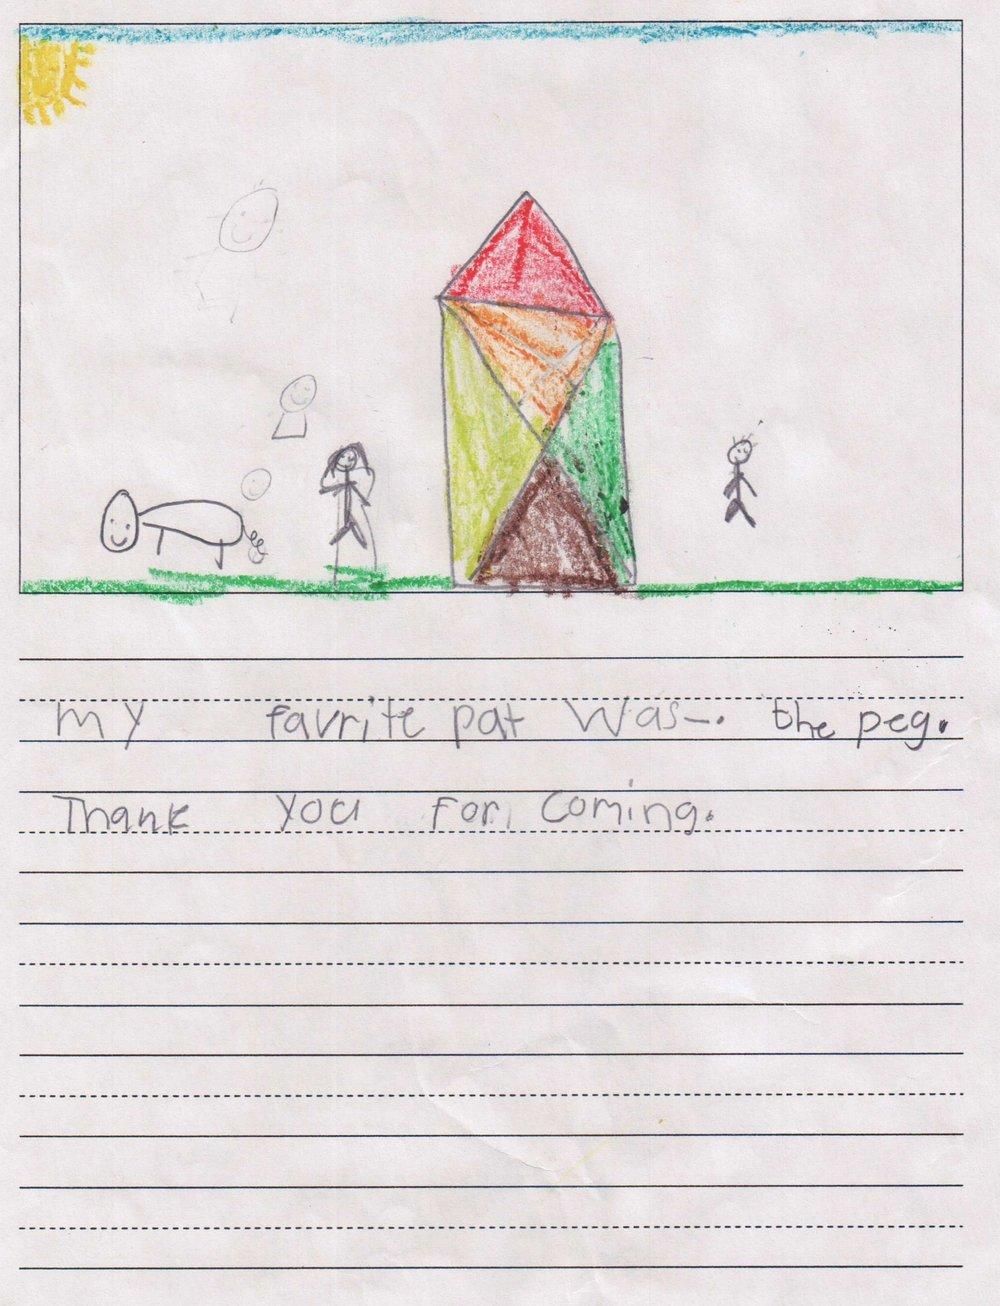 """My favorite part was the pig. Thank you for coming."" - A student from Scarborough Elementary/Houston ISD."